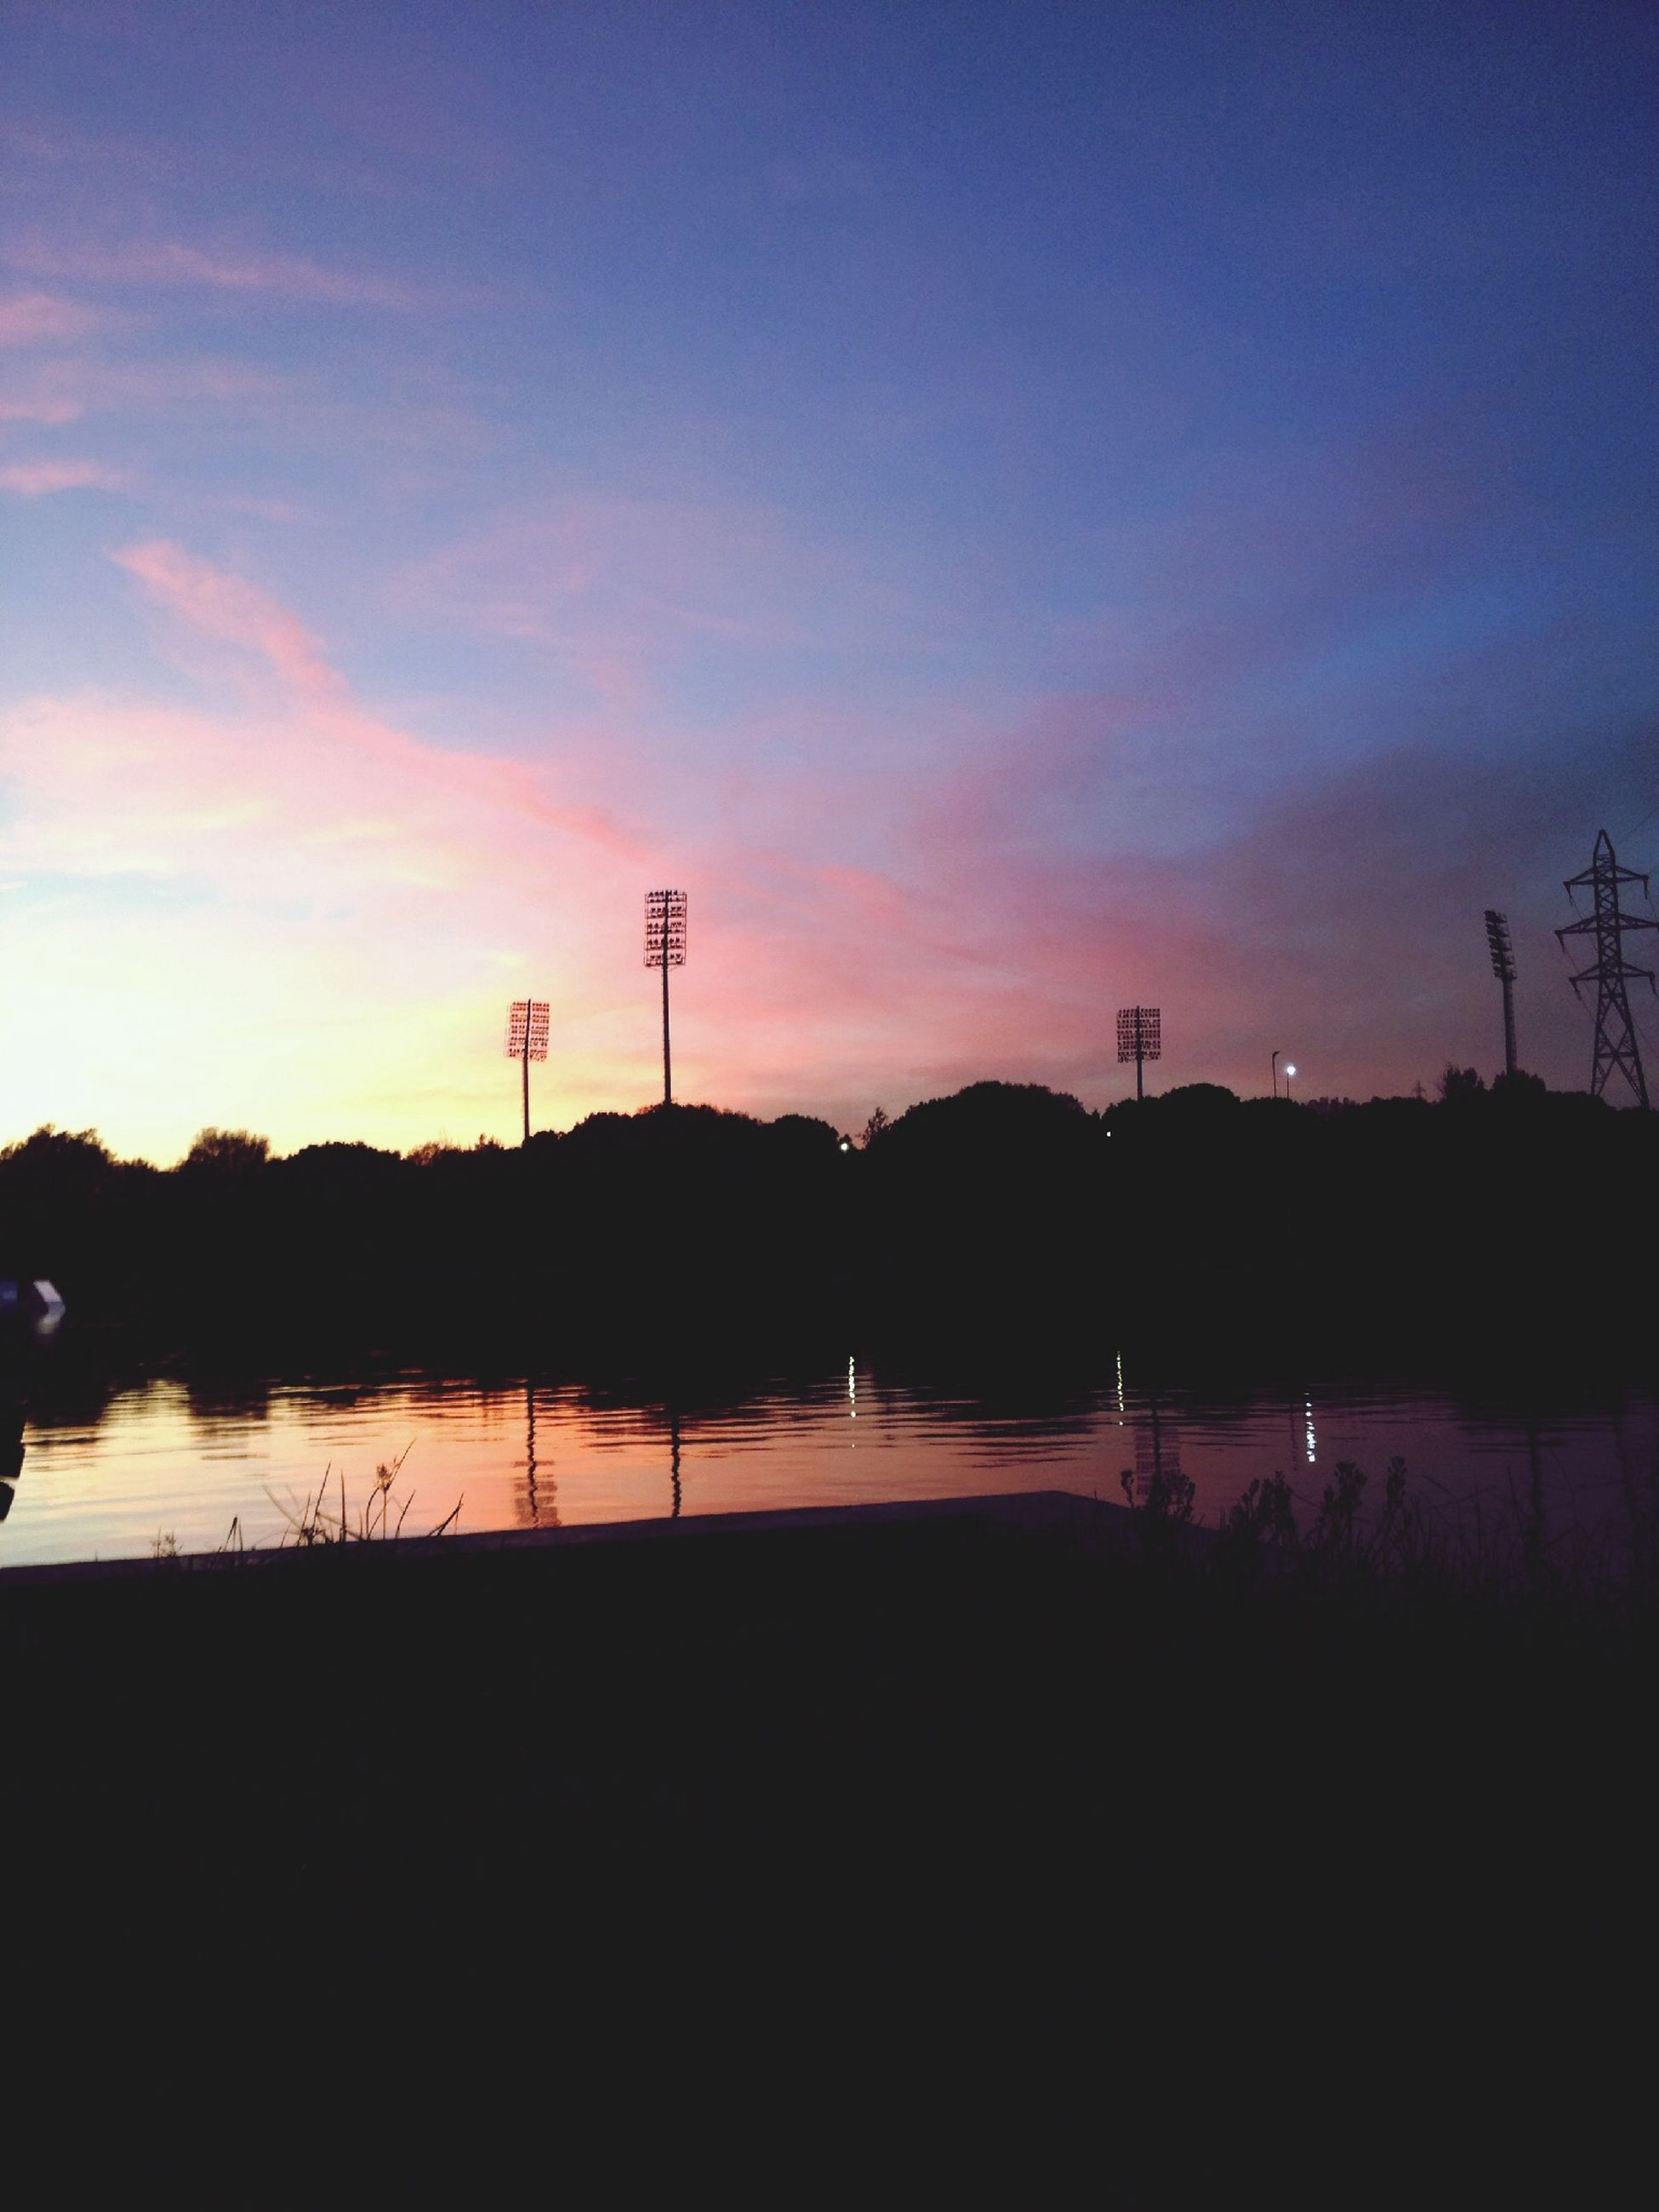 sunset, silhouette, sky, tranquil scene, scenics, tranquility, water, beauty in nature, orange color, tree, nature, lake, idyllic, dusk, reflection, cloud - sky, outdoors, calm, river, landscape